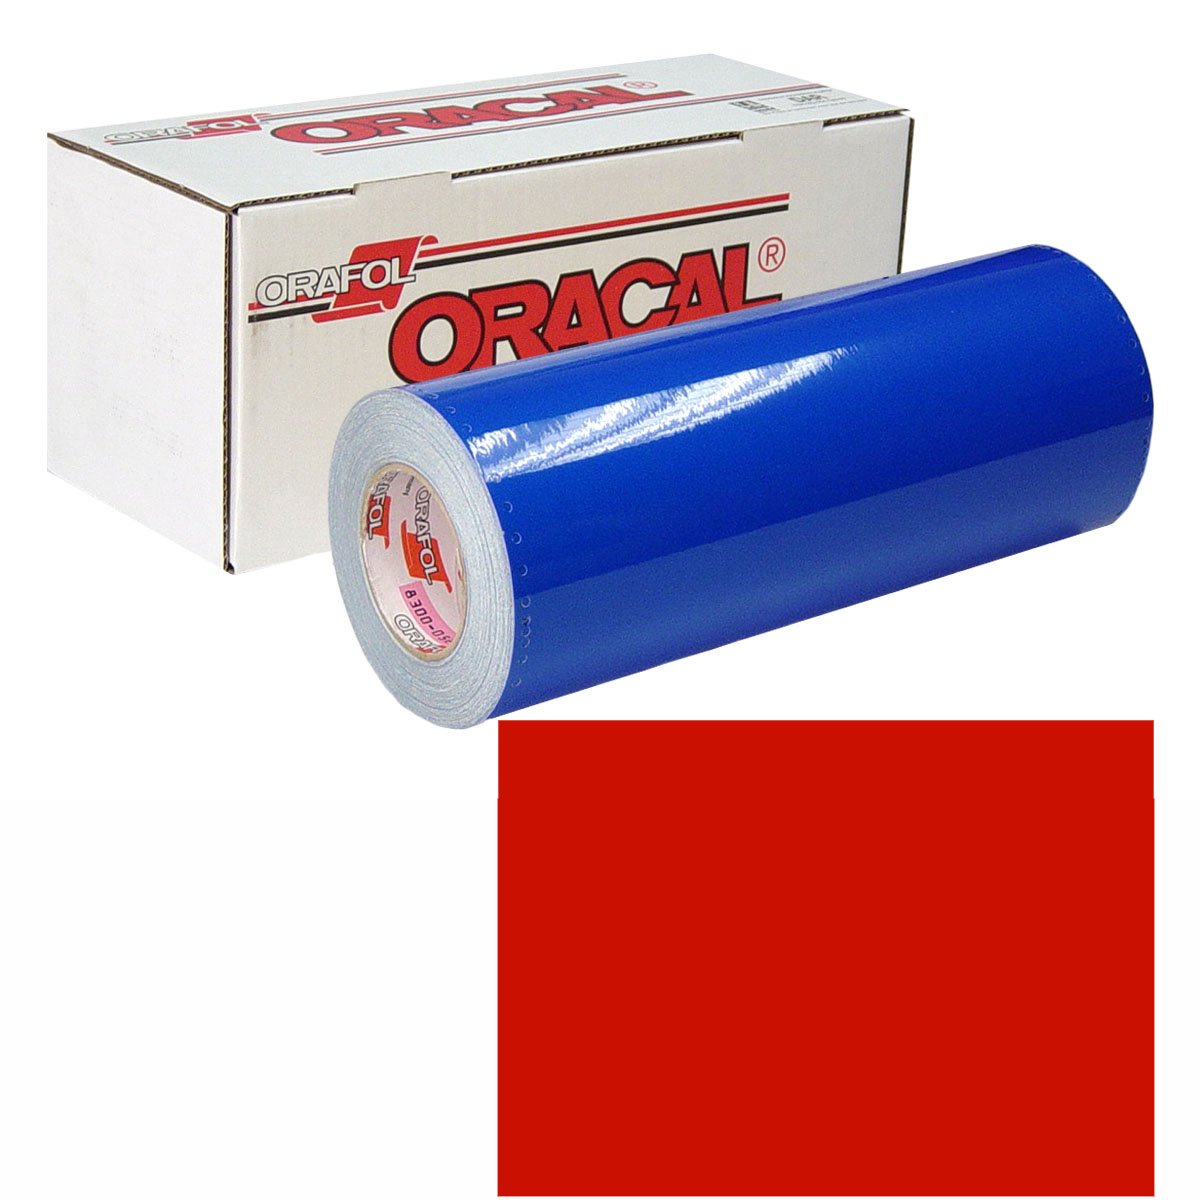 ORACAL 631 15in X 50yd 032 Light Red